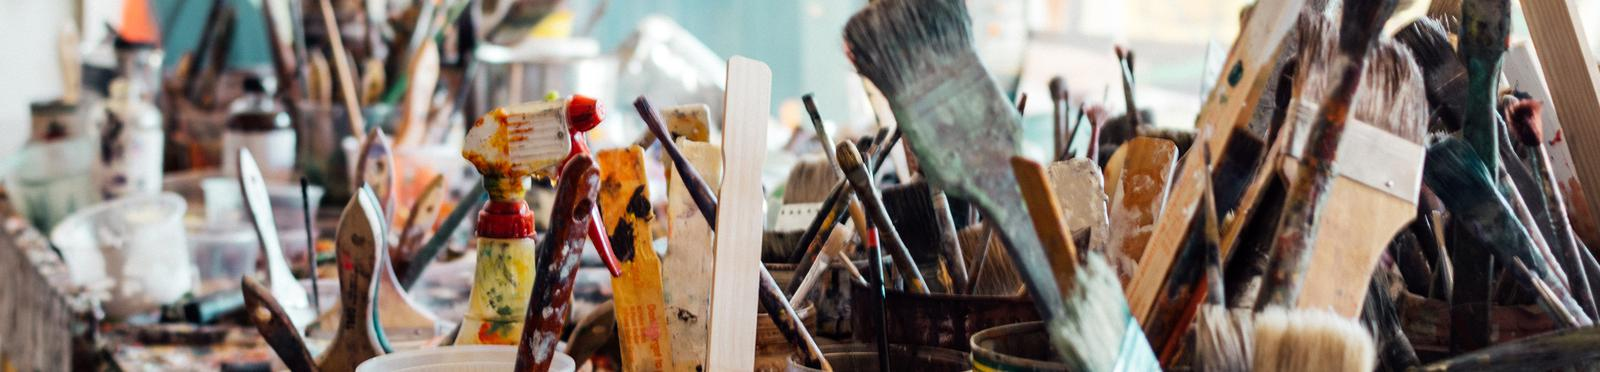 Painting Studio filled with brushes.